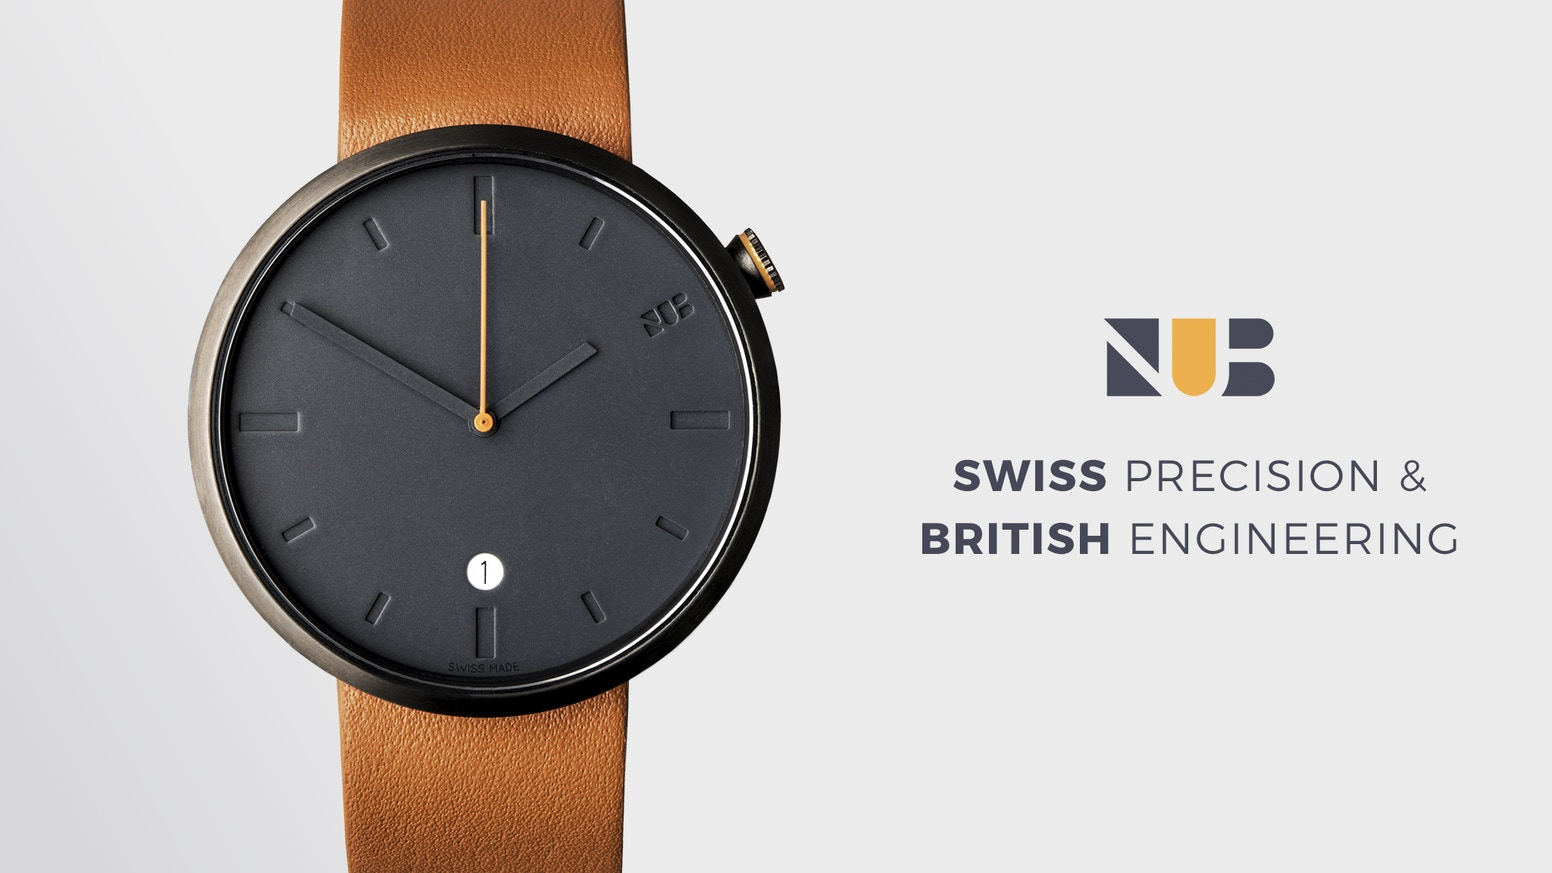 Without compromising on looks or quality, we've created a Swiss-made watch at a fraction of the cost.